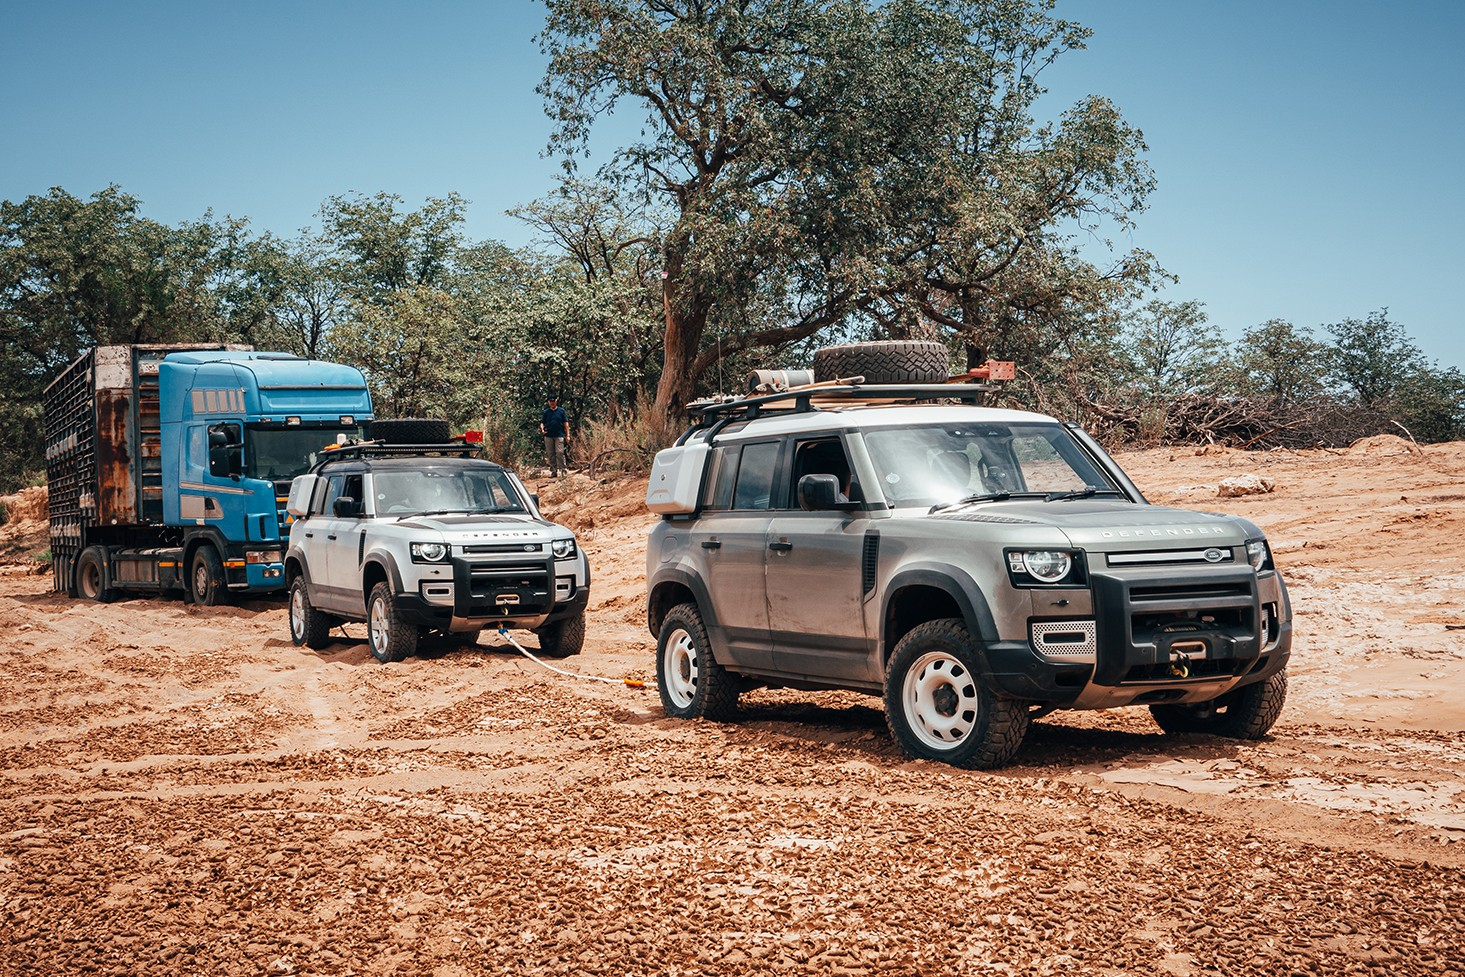 New Land Rover Defender in Namibia James Bond 2020 007 Africa South Africa Desert off-roading awd adventure